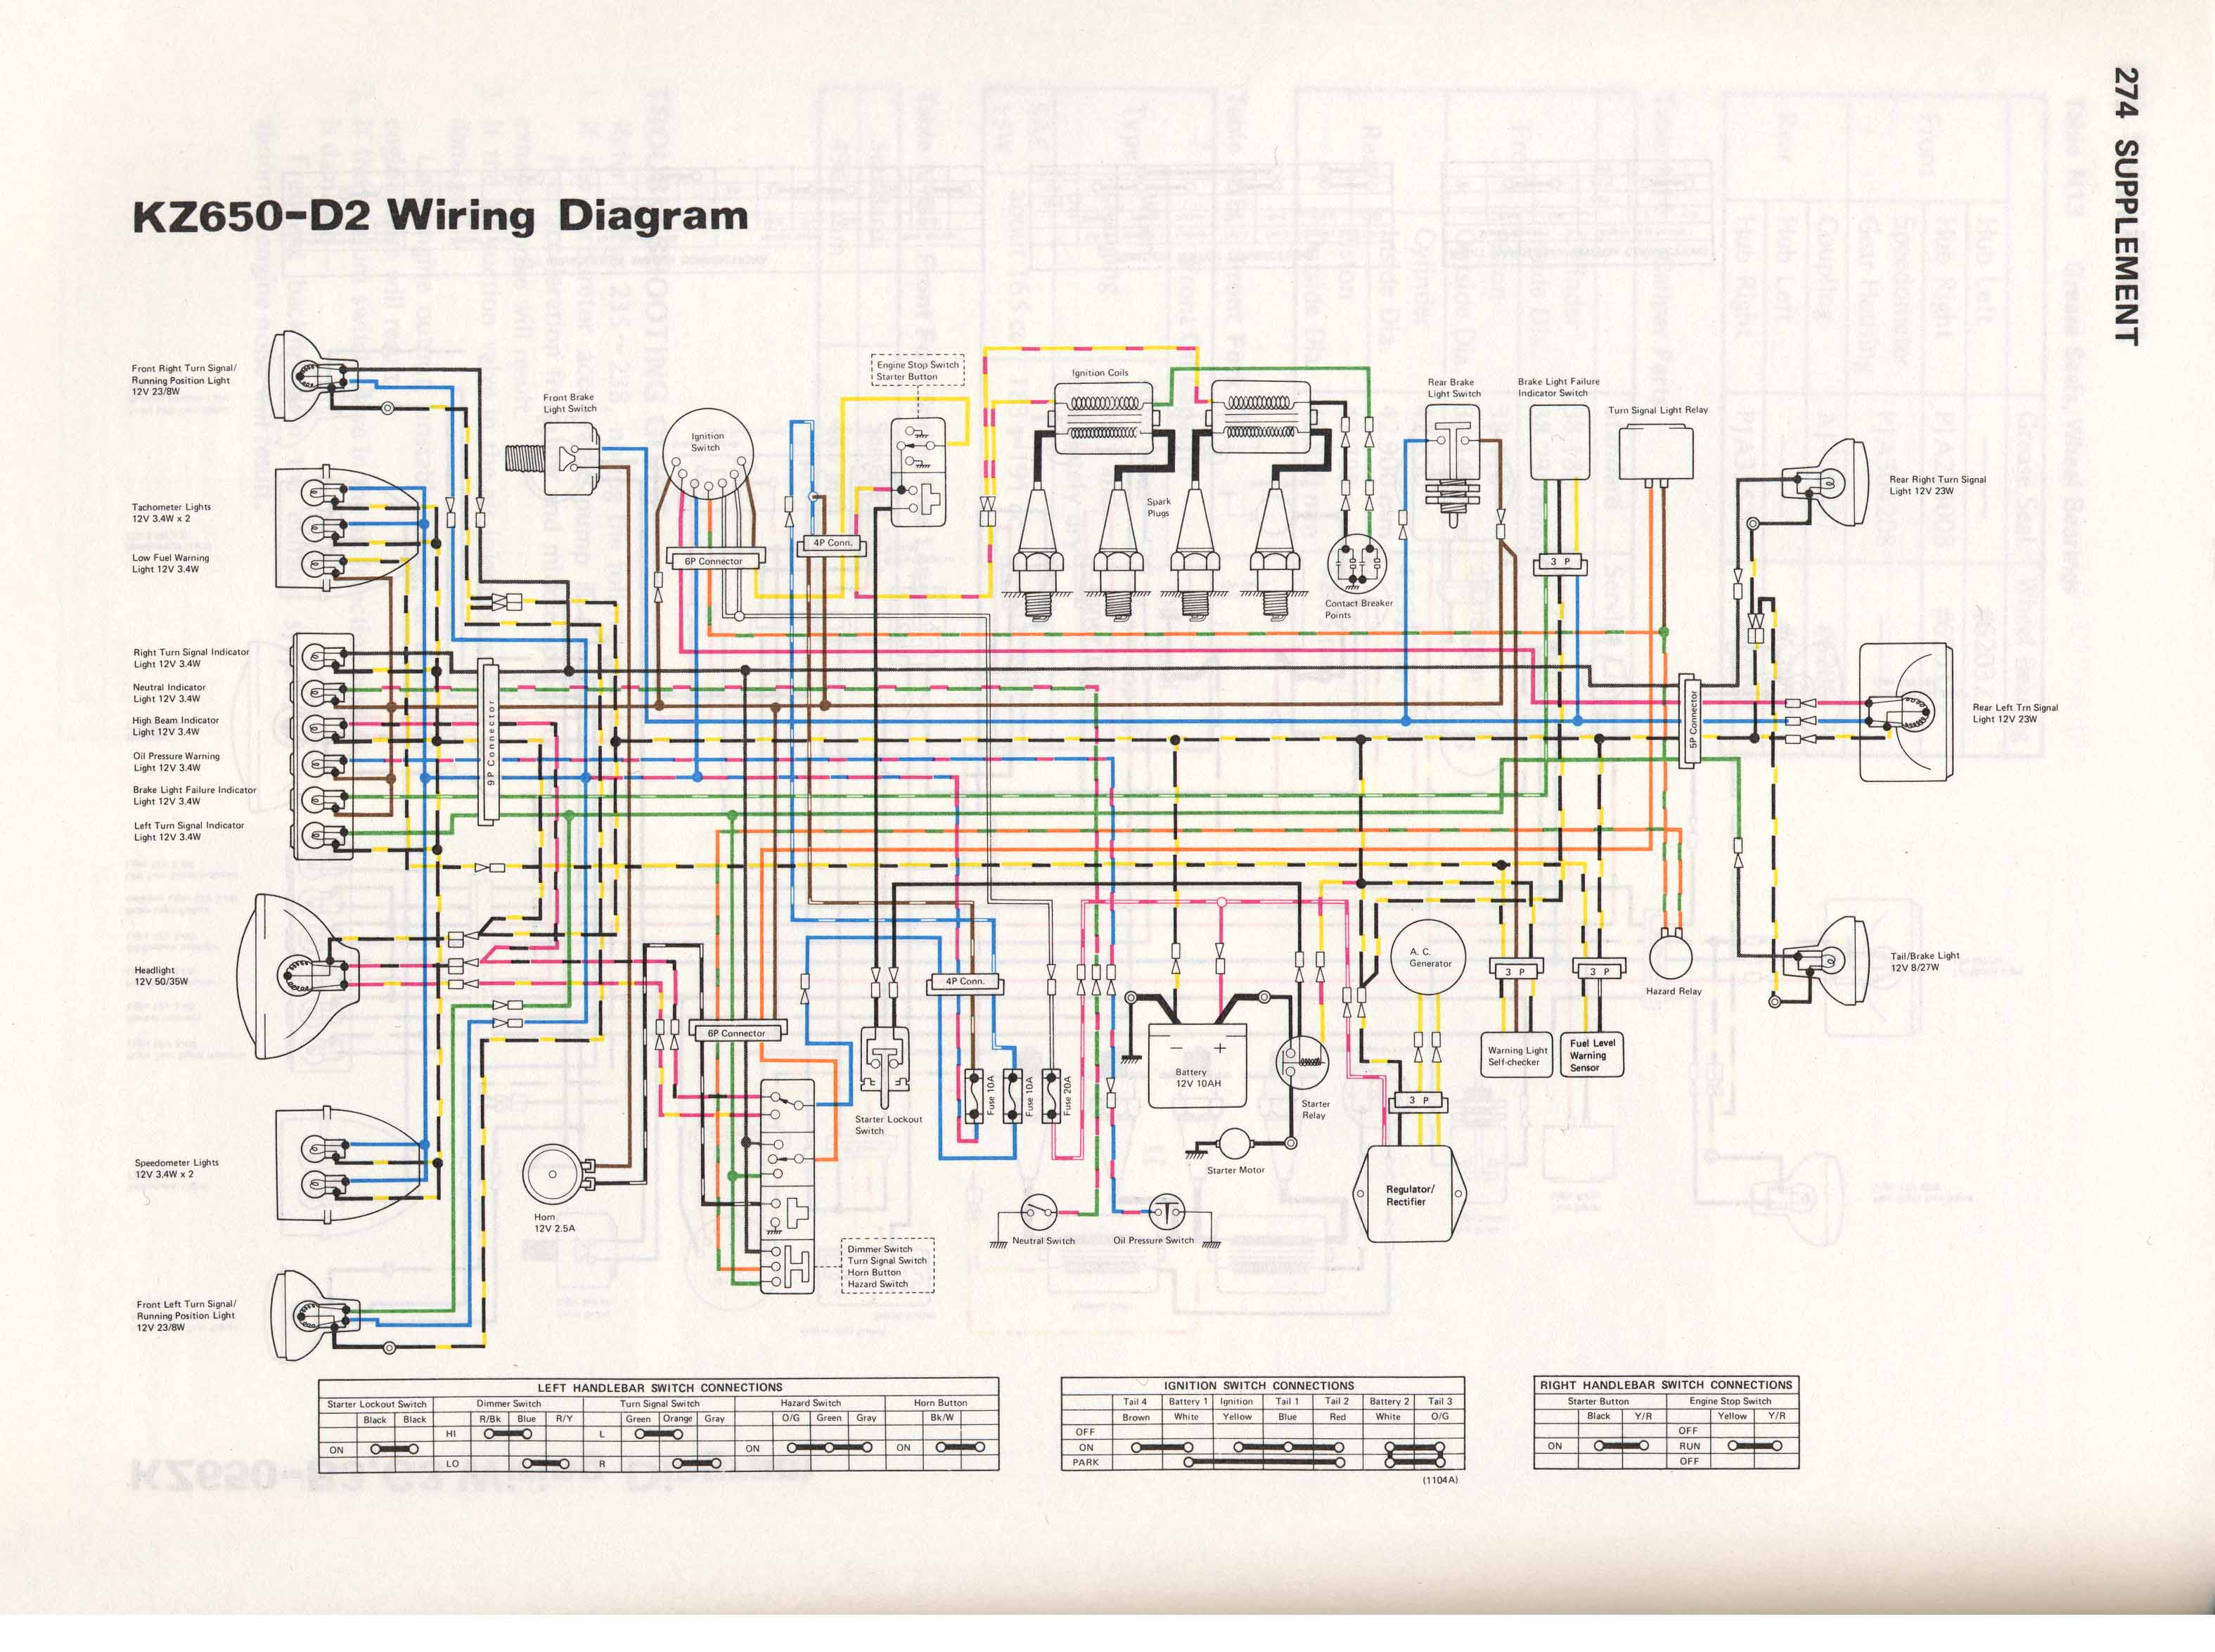 Groovy Kawasaki Kz1100 Wiring Diagram Shaft Basic Electronics Wiring Diagram Wiring 101 Orsalhahutechinfo